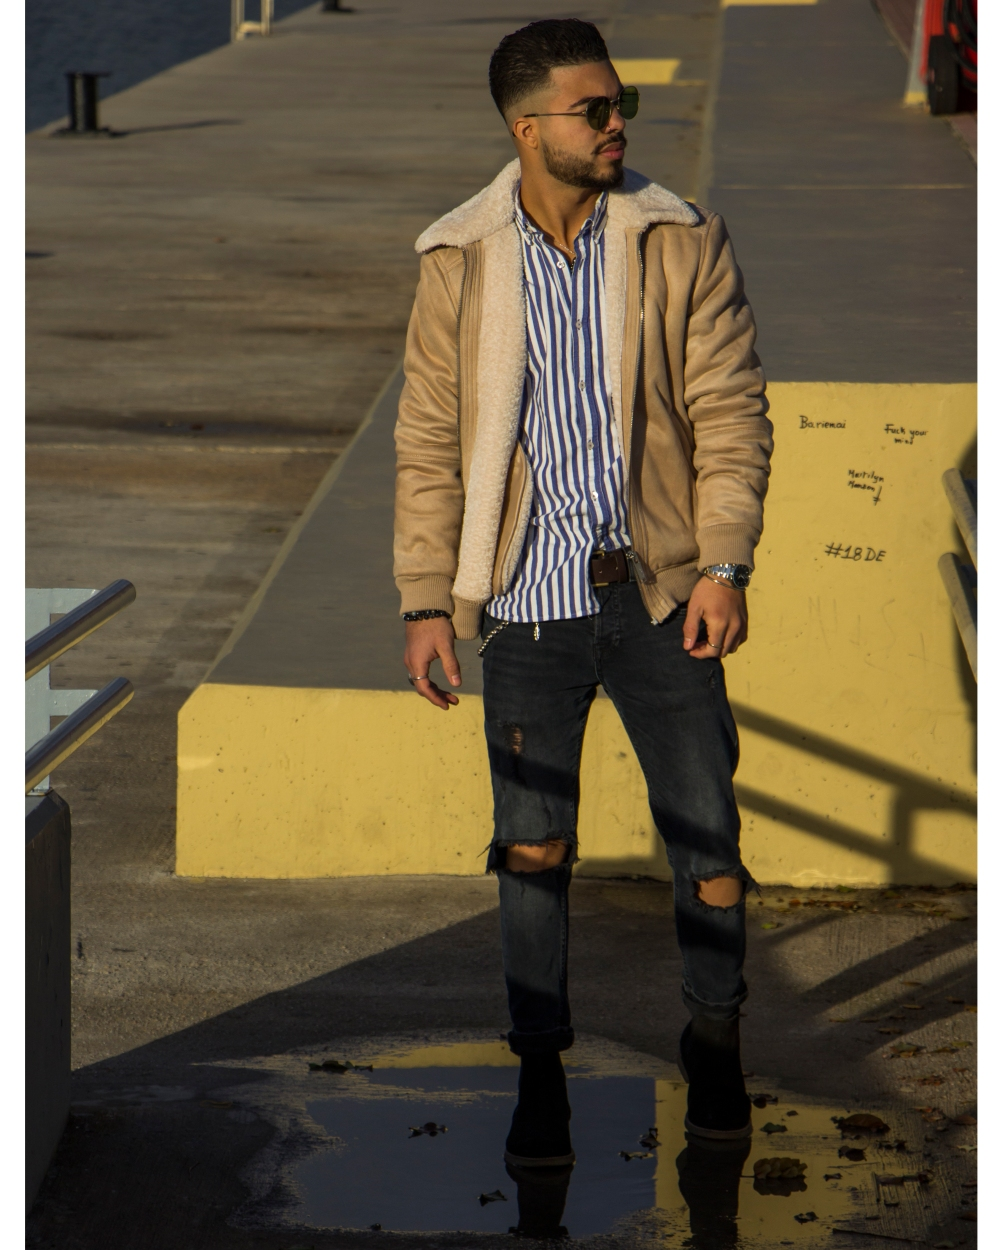 LewysMaceo_StealHisStyle_JustNatonya_striped shirt and jacket